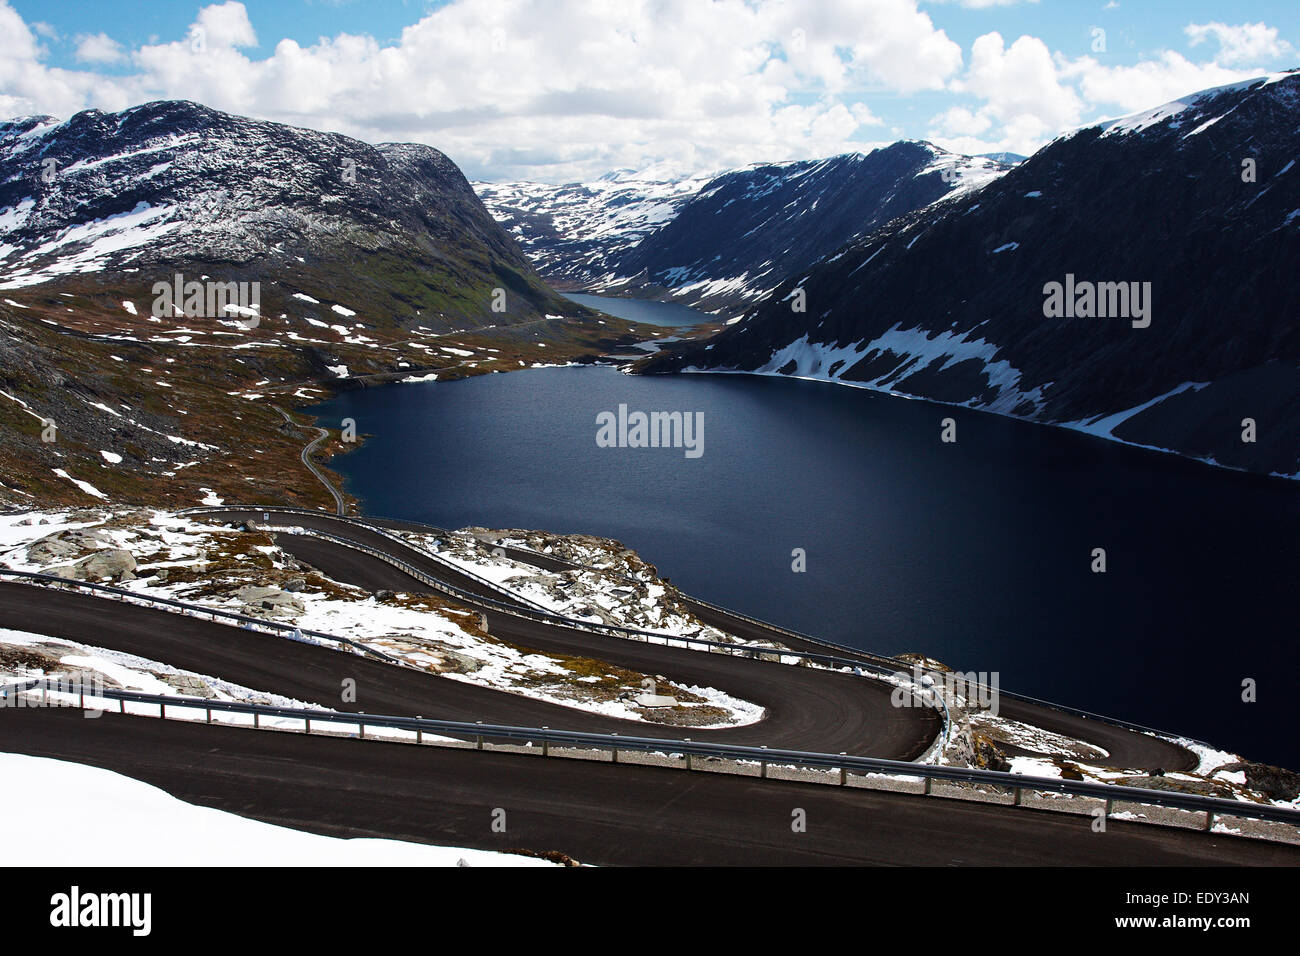 Road to Dalsnibba and Djupvatnet lake in Norway - Stock Image